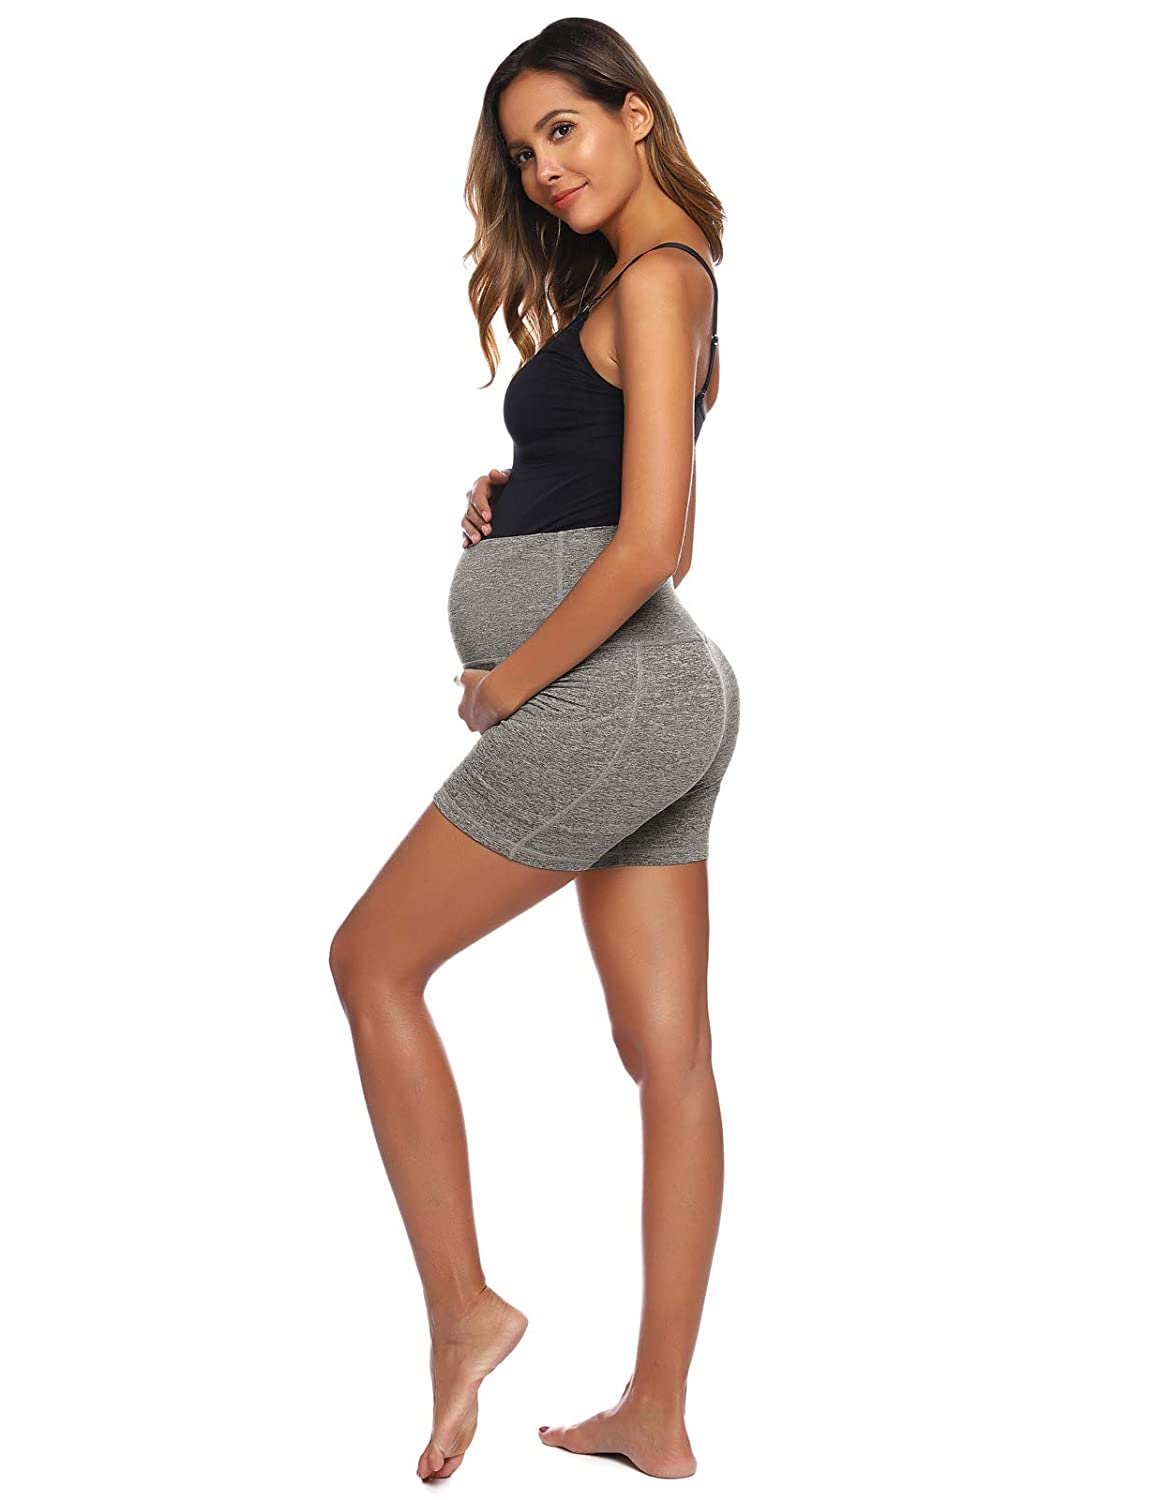 Women Maternity Yoga Shorts Over The Belly Workout Running Active Athletic Shorts